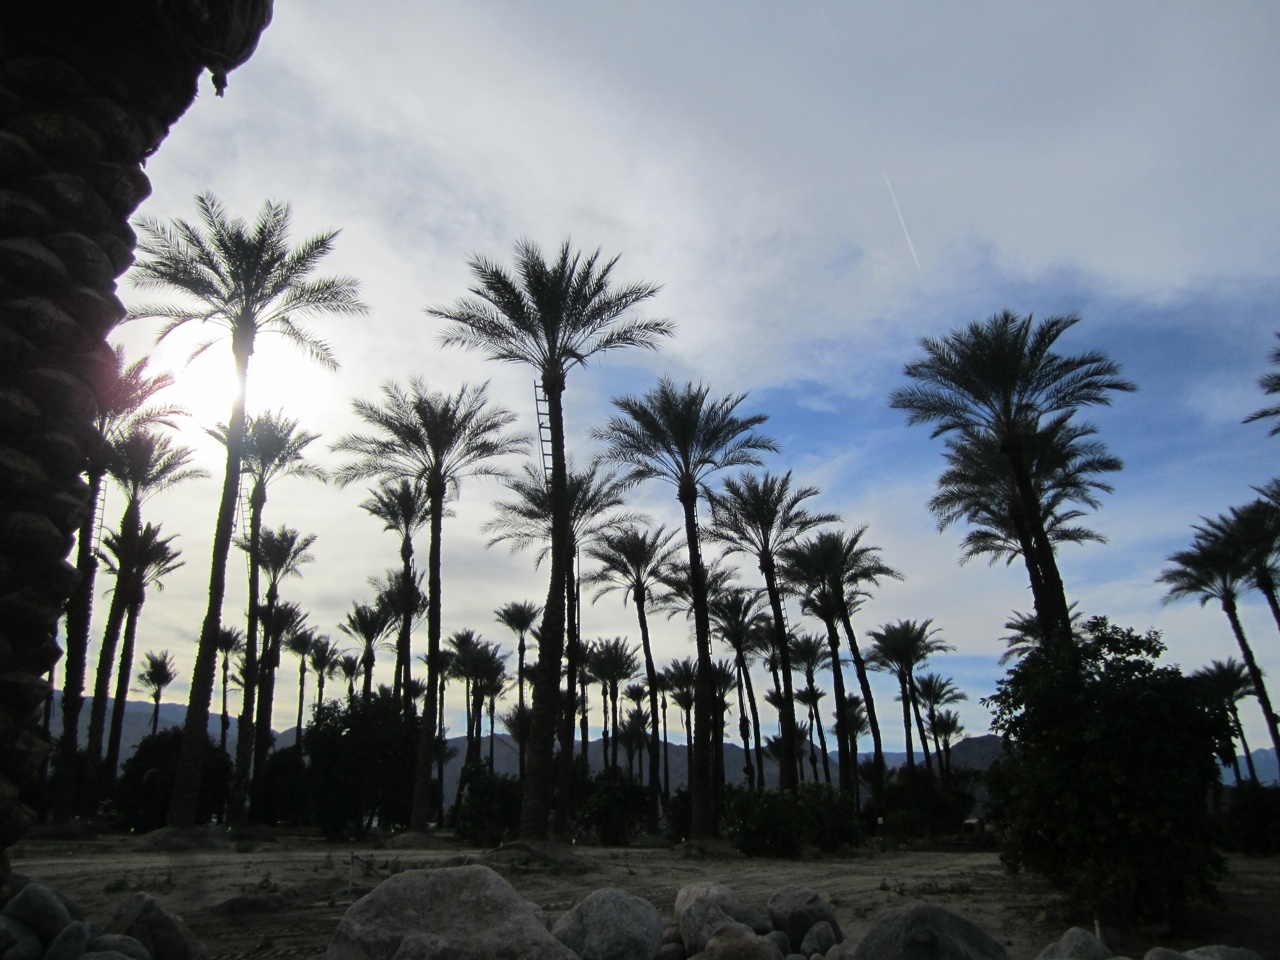 The Date Palms At Shields Date Garden In Indio, CA